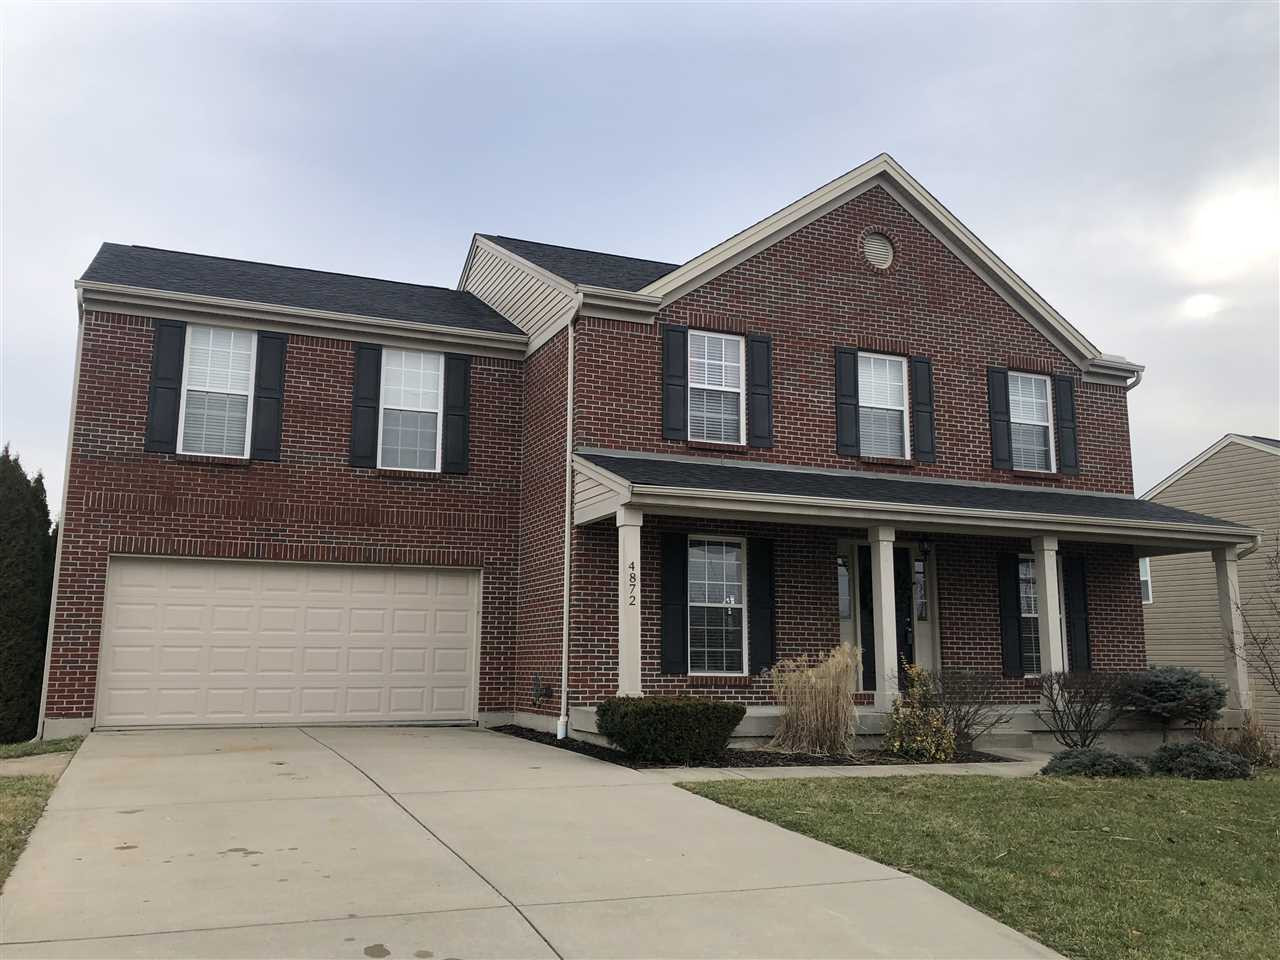 Photo 1 for 4872 Far Hills Dr Independence, KY 41051